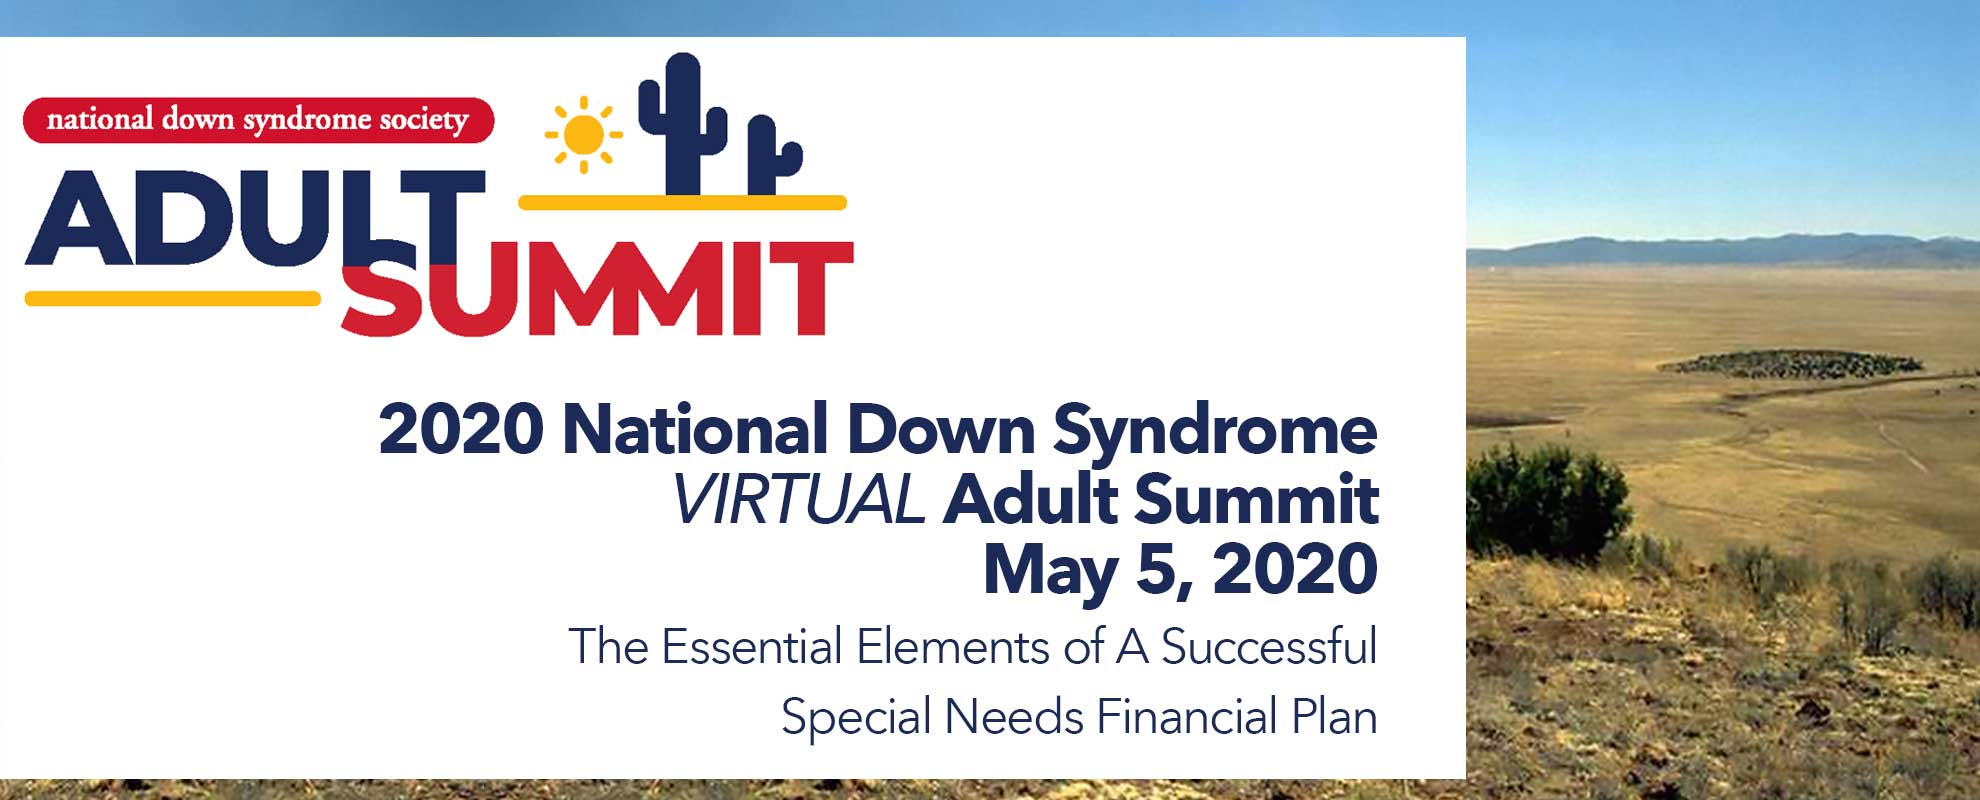 2020 National Down Syndrome Virtual Adult Summit- The Essential Elements of A Successful Special Needs Financial Plan